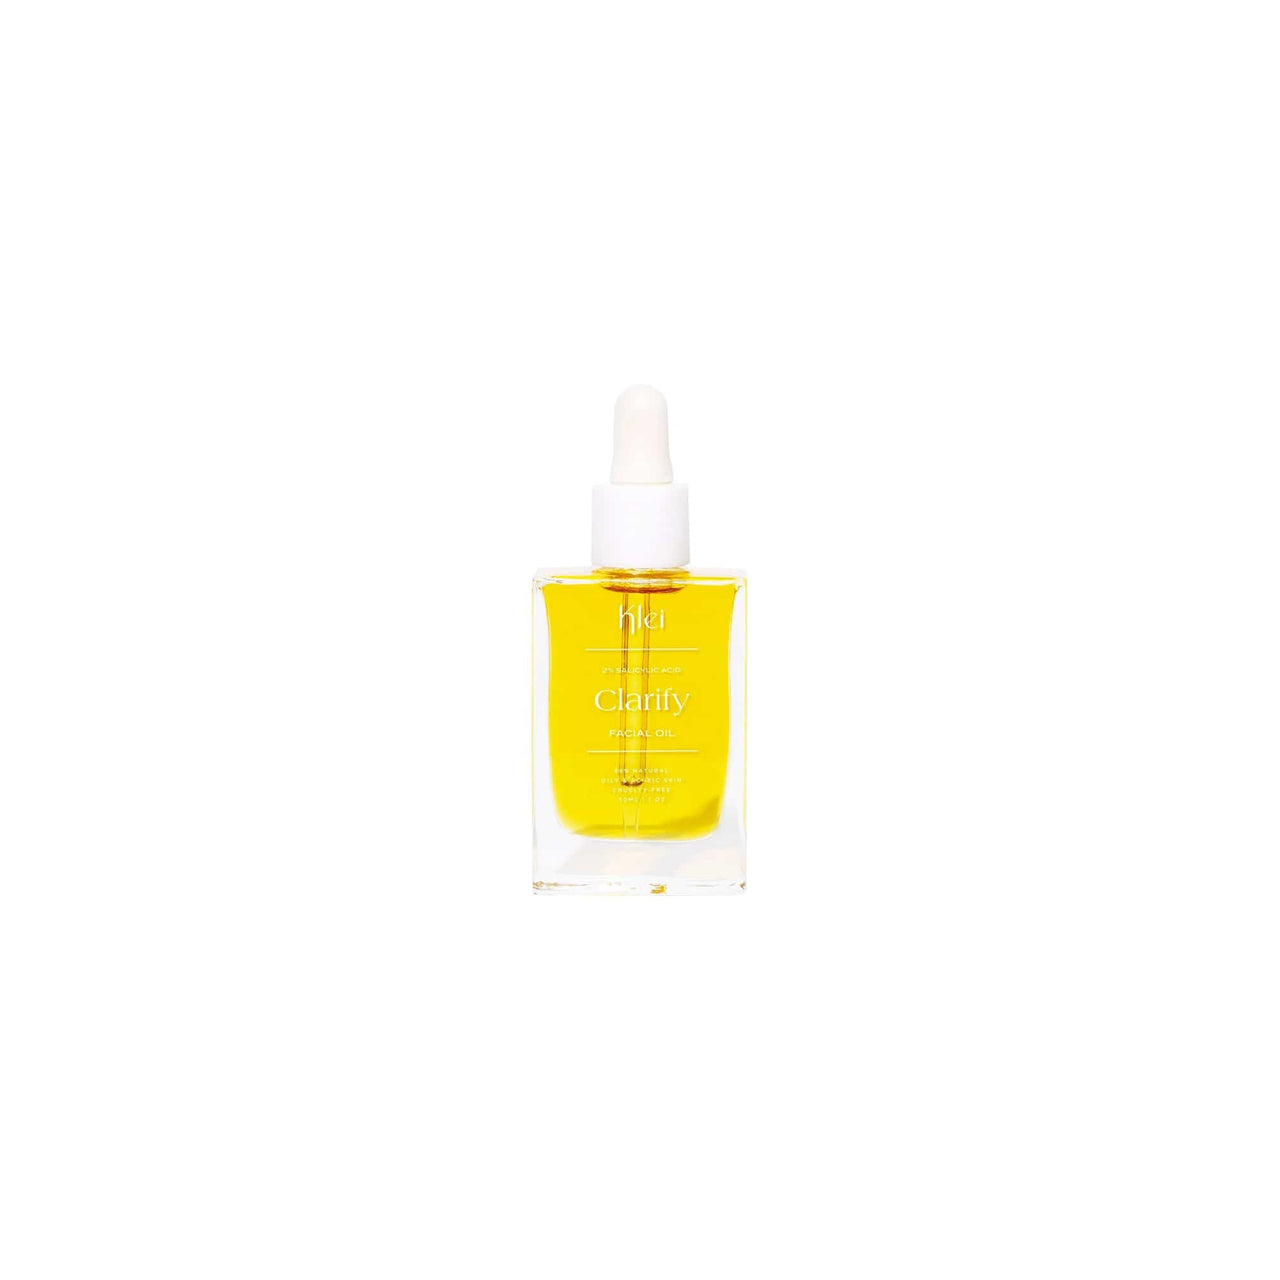 Klei Beauty Face 1oz Salicylic Acid Clarify Treatment Oil